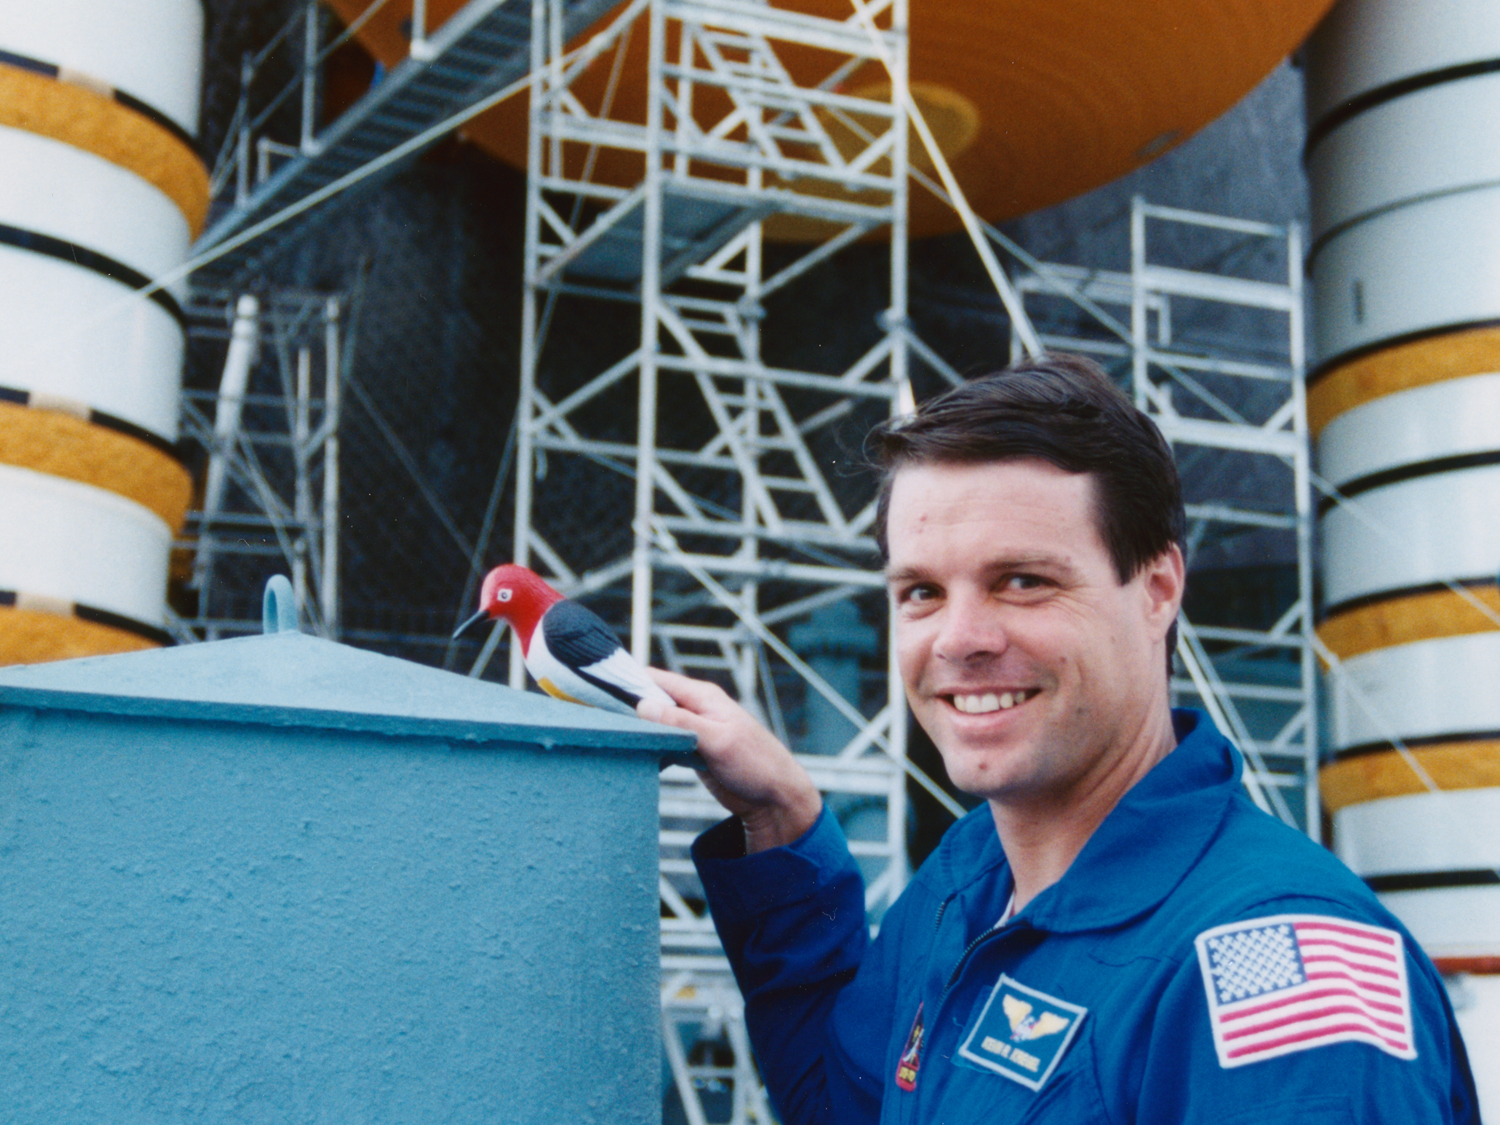 Pilot Kevin Kregel poses while repairs are made (photo Don Thomas).